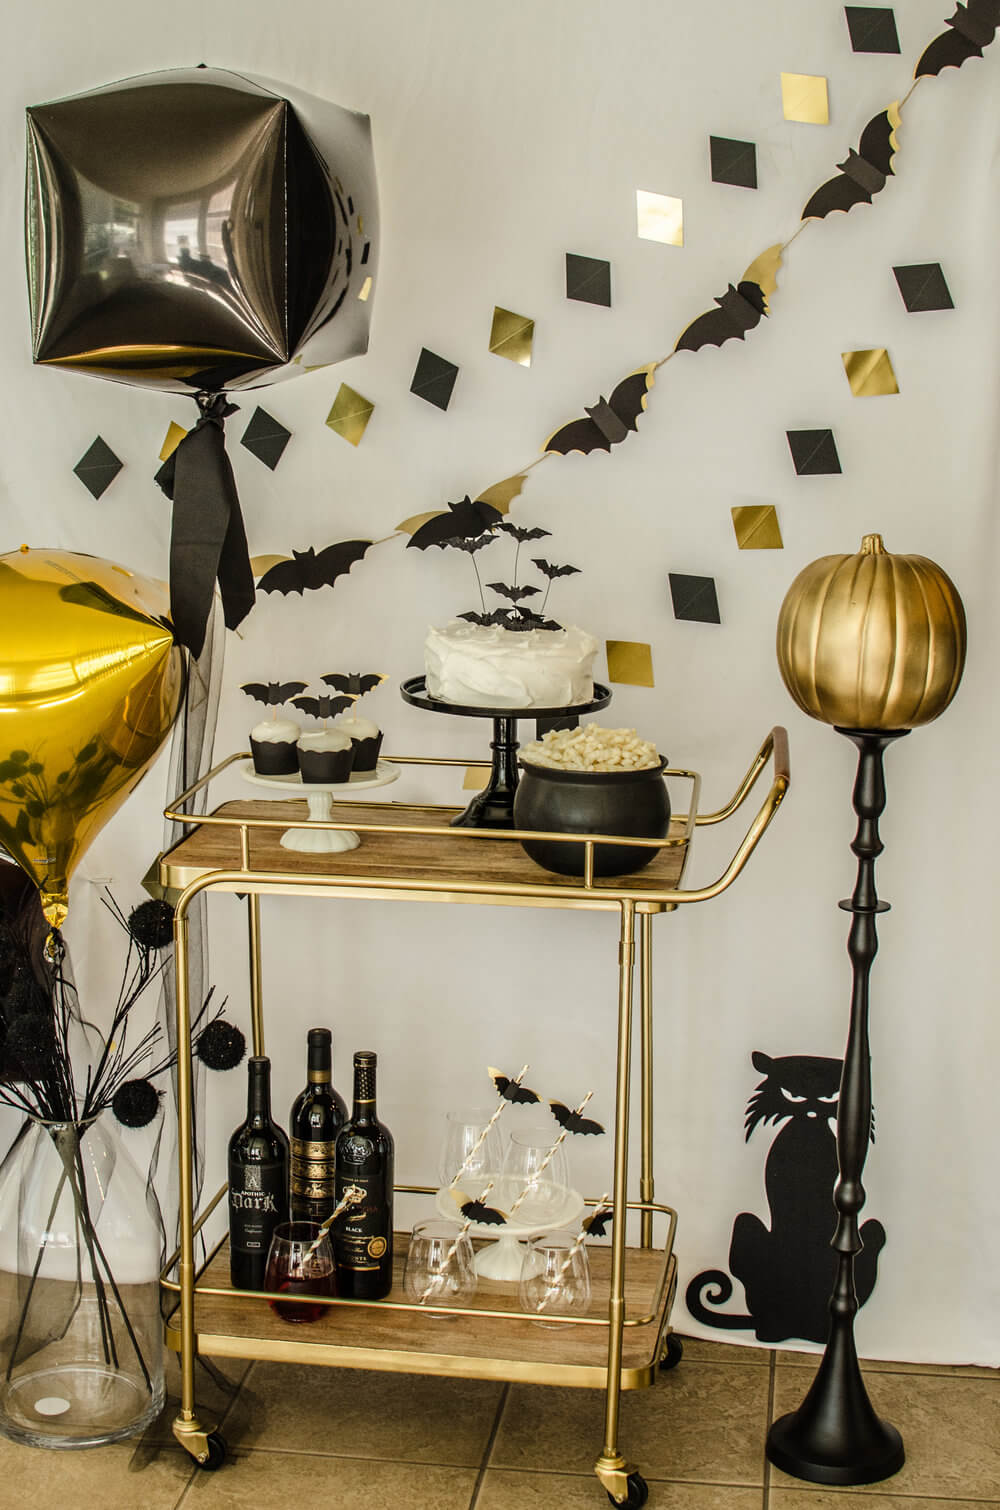 Adding a few elegant touches can really elevate a simple bar cart and make your Halloween bash so classy. Styled by party stylist Carolina of Mint Event Design. #partyideas #partyinspiration #halloween #barcart #barcartdecor